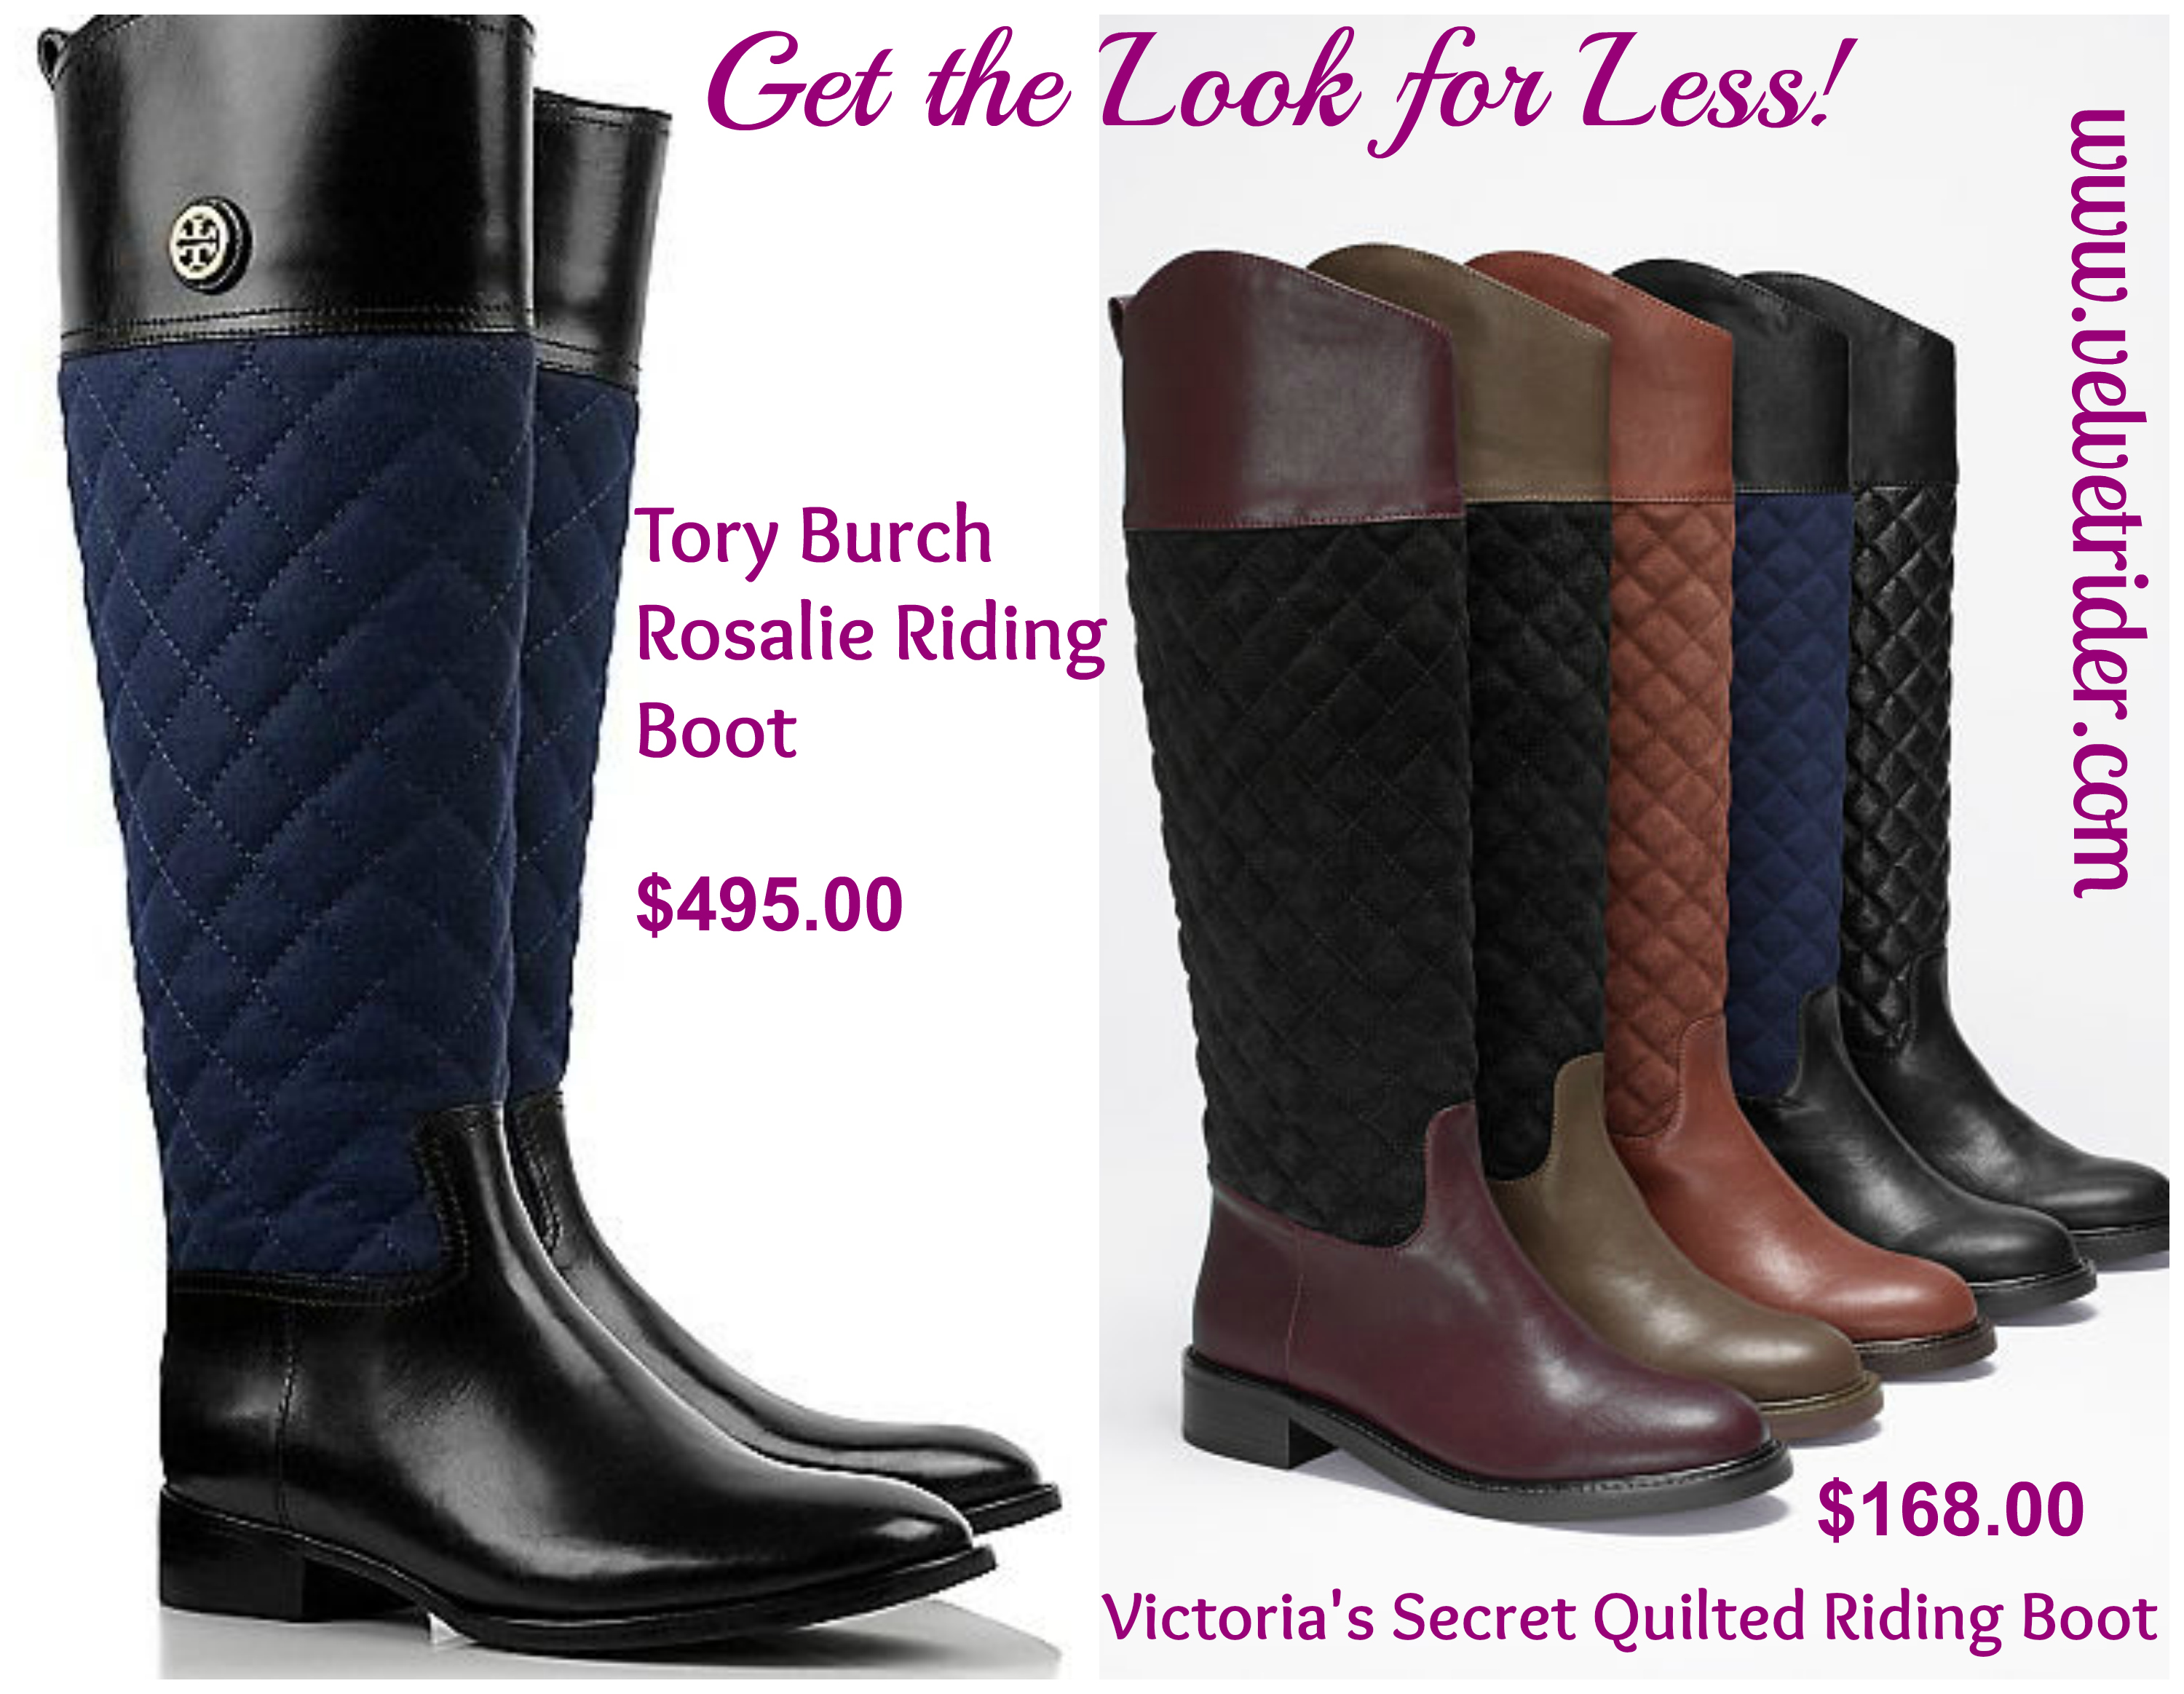 5e5ef652a9e ... Quilted Riding Boot from Victoria s Secret! GTLFL TB